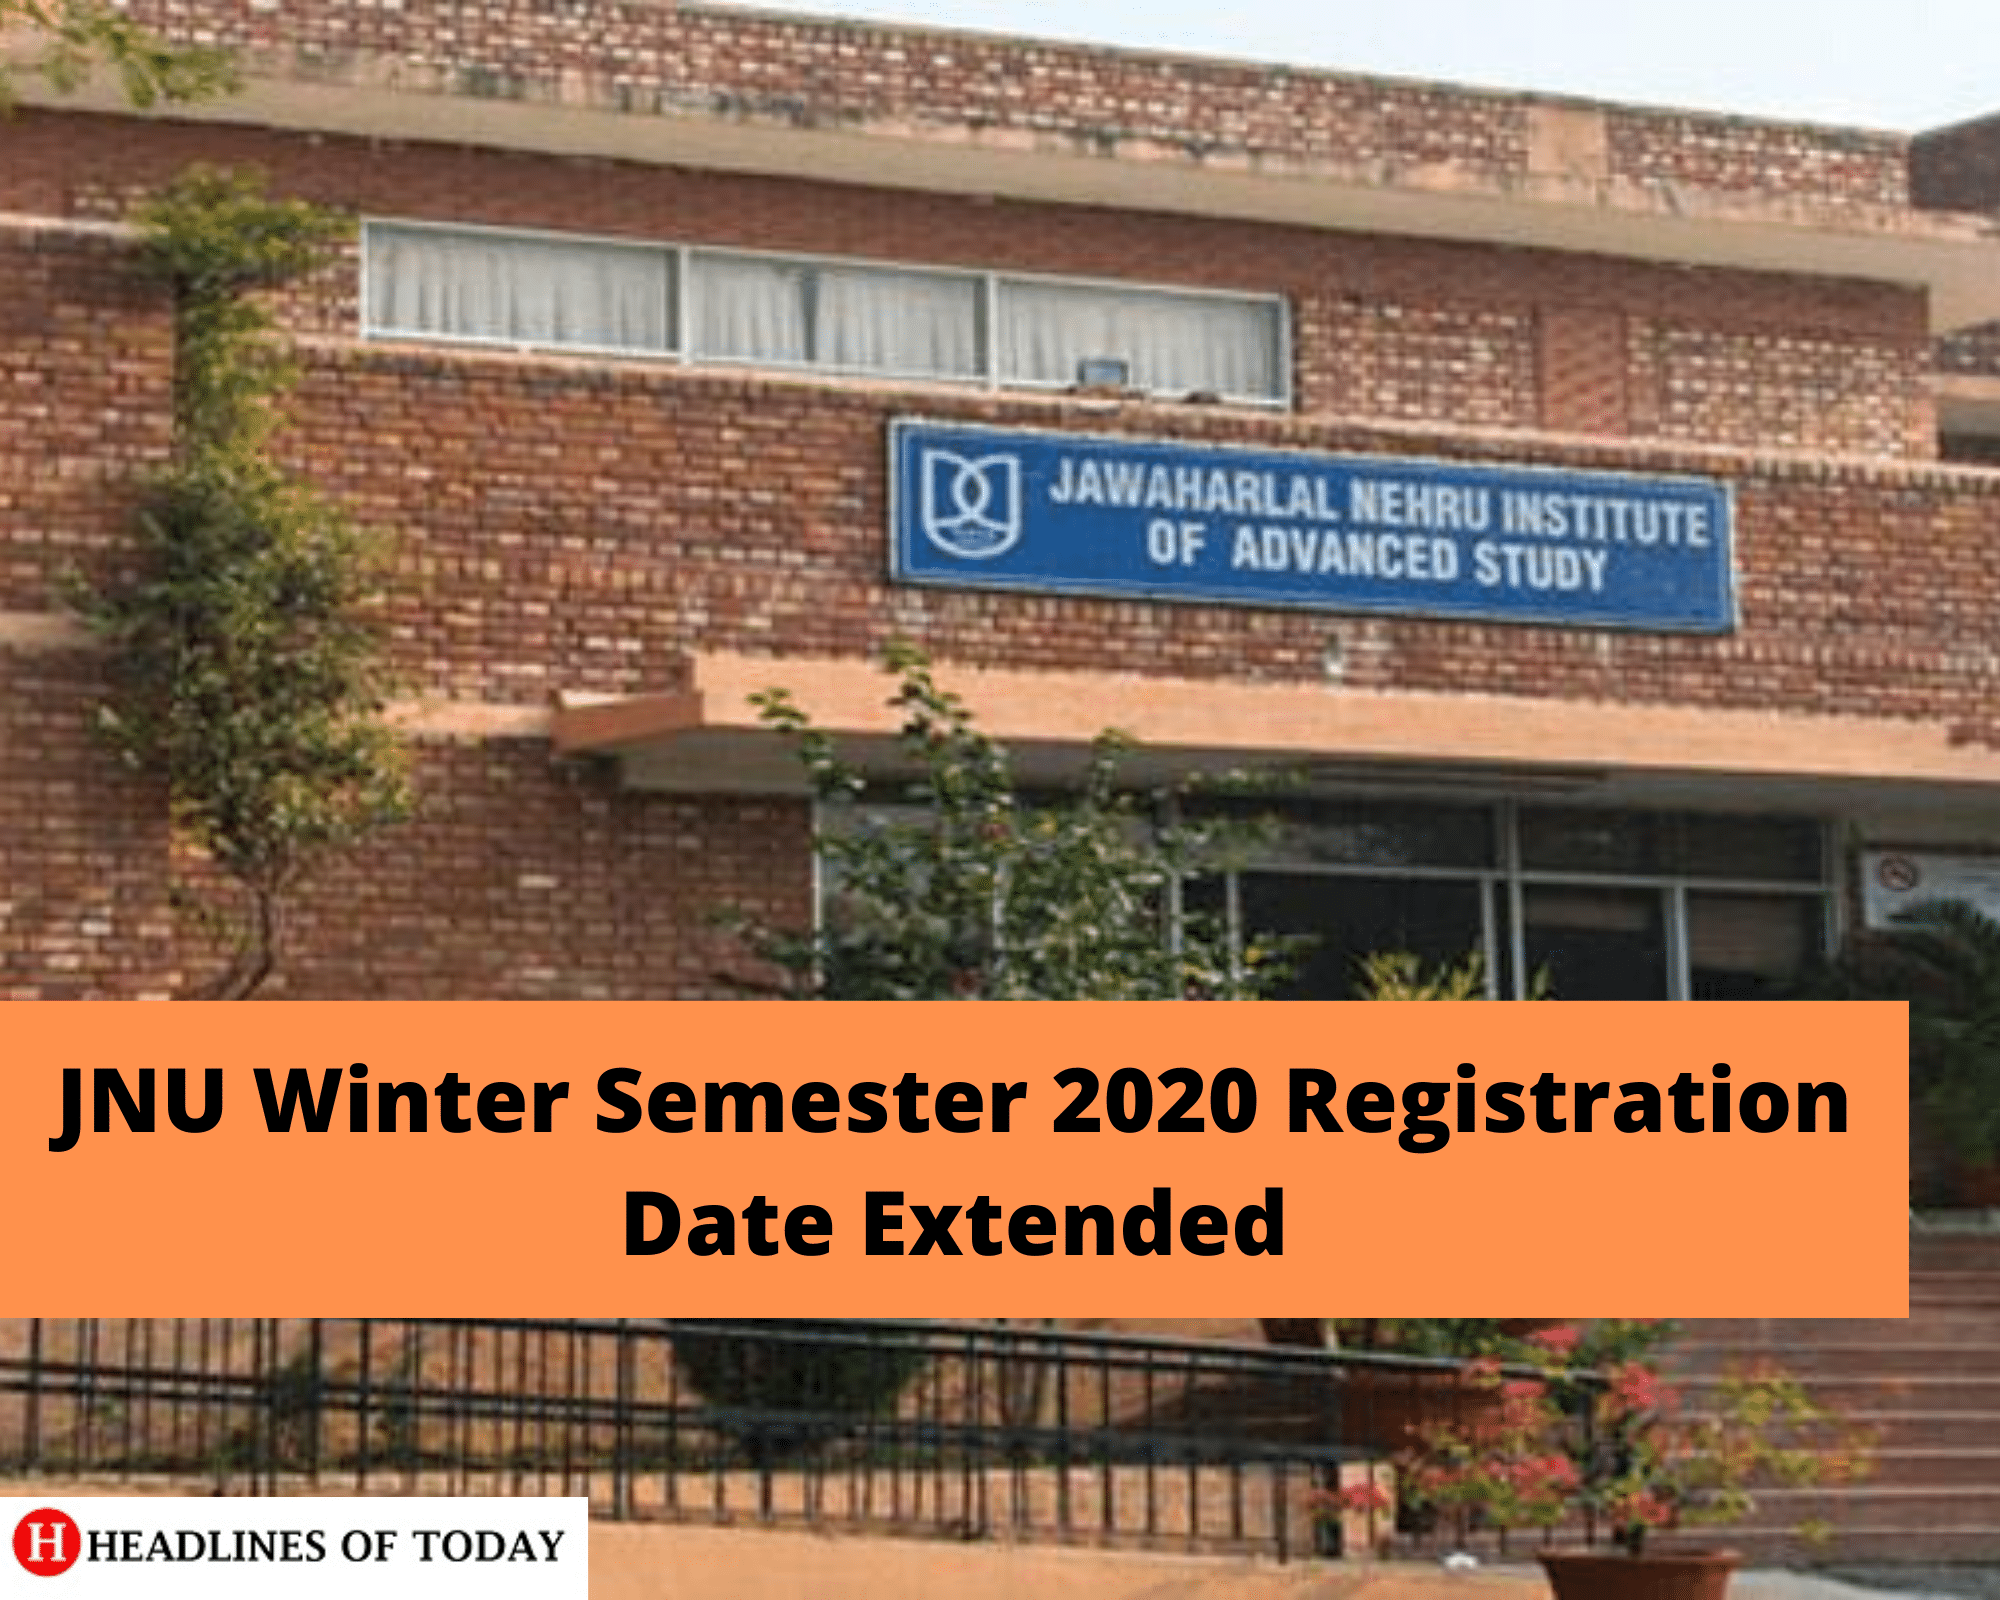 JNU Winter Semester 2020